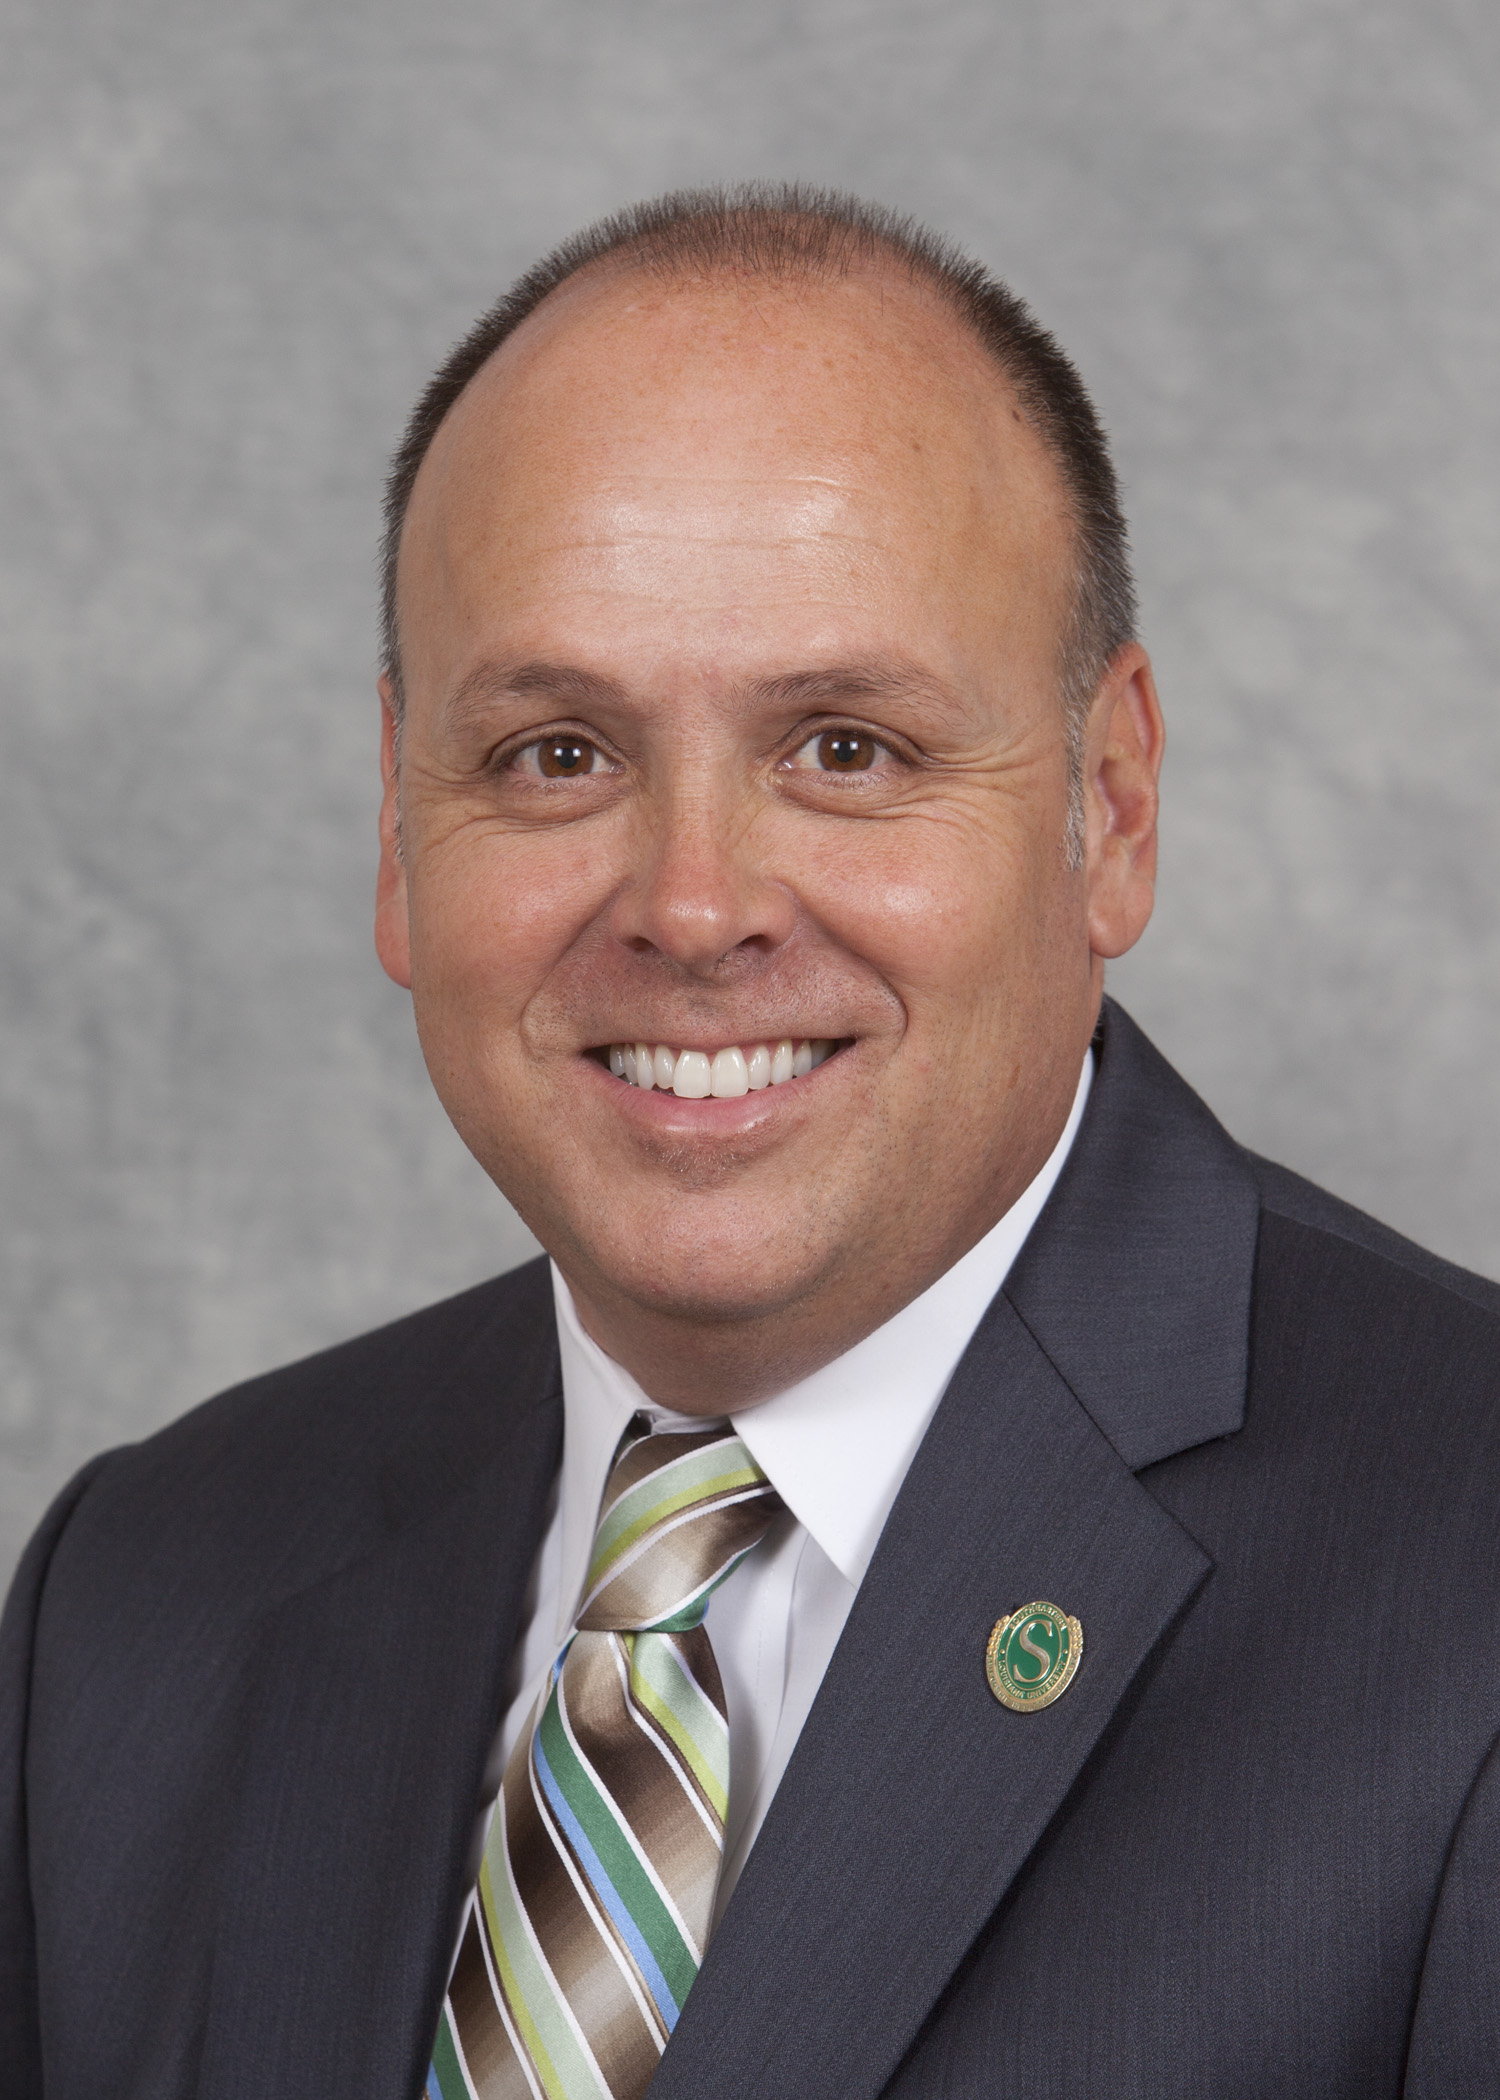 Domiano Appointed Vice President For Administration And Finance At  Southeastern. Wednesday, June 4, 2014 Sam Domiano Jr.